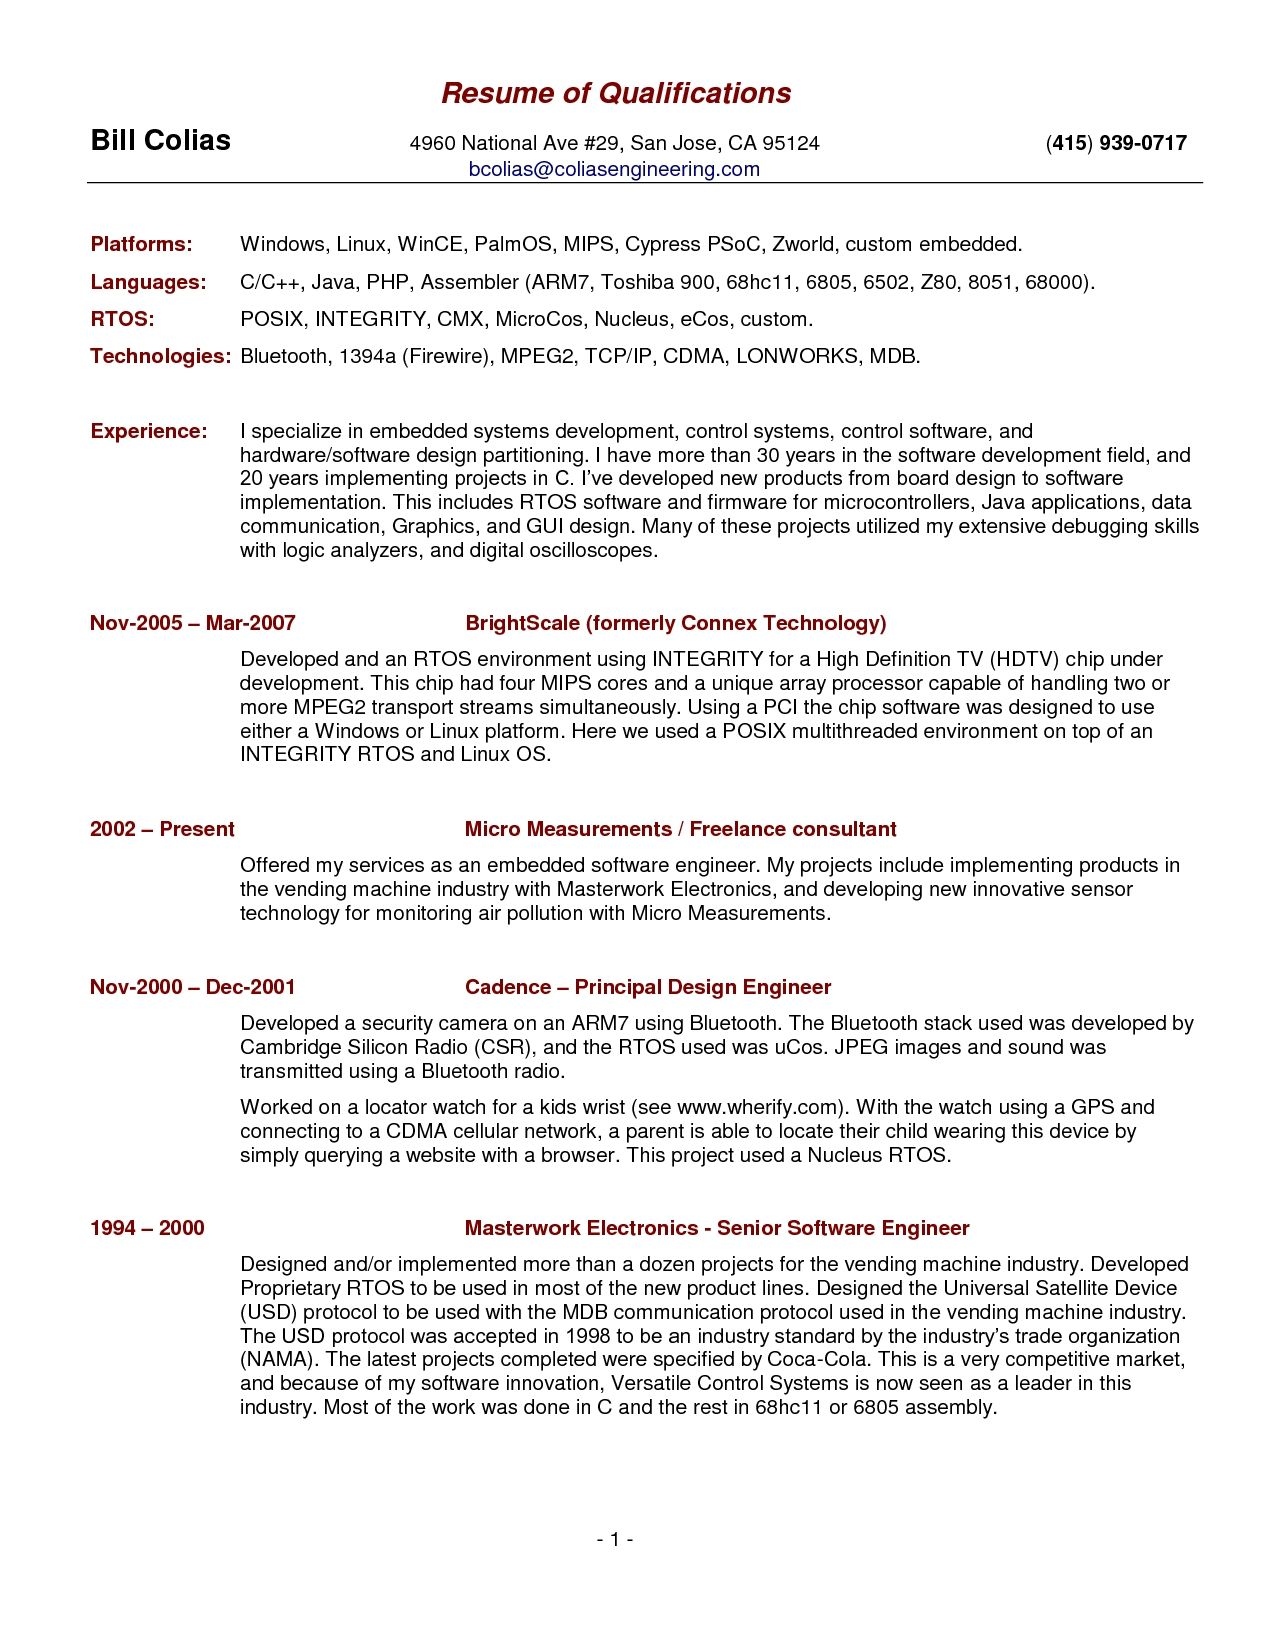 Skills On A Resume Examples Qualifications For A Resume Examples 7F8Ea3A2A New Resume Skills